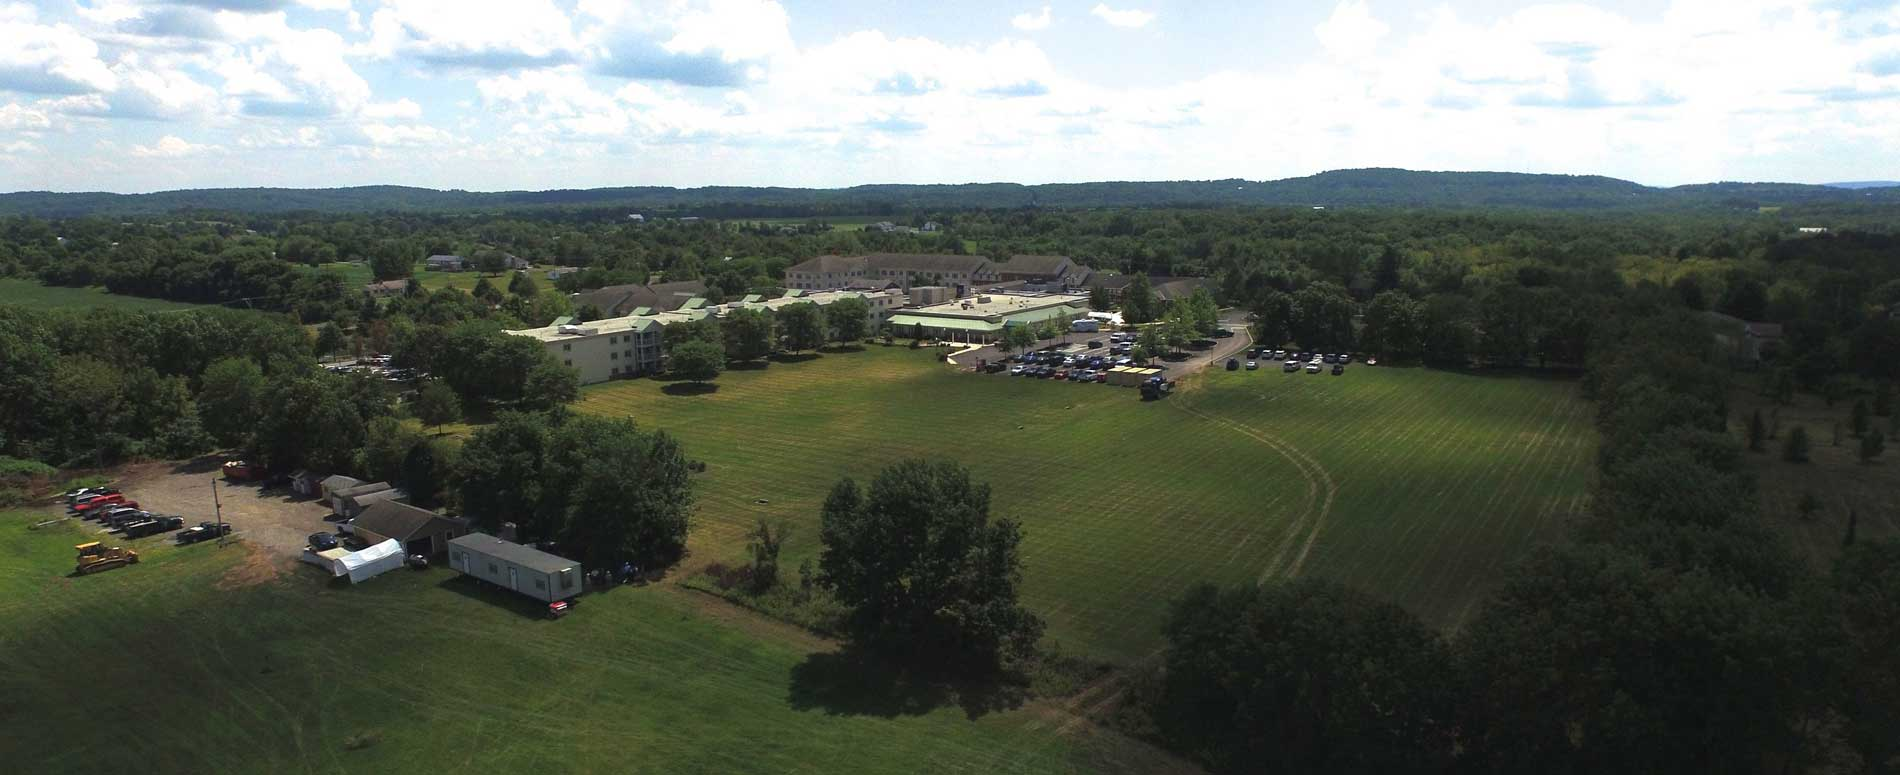 frederick living campus image